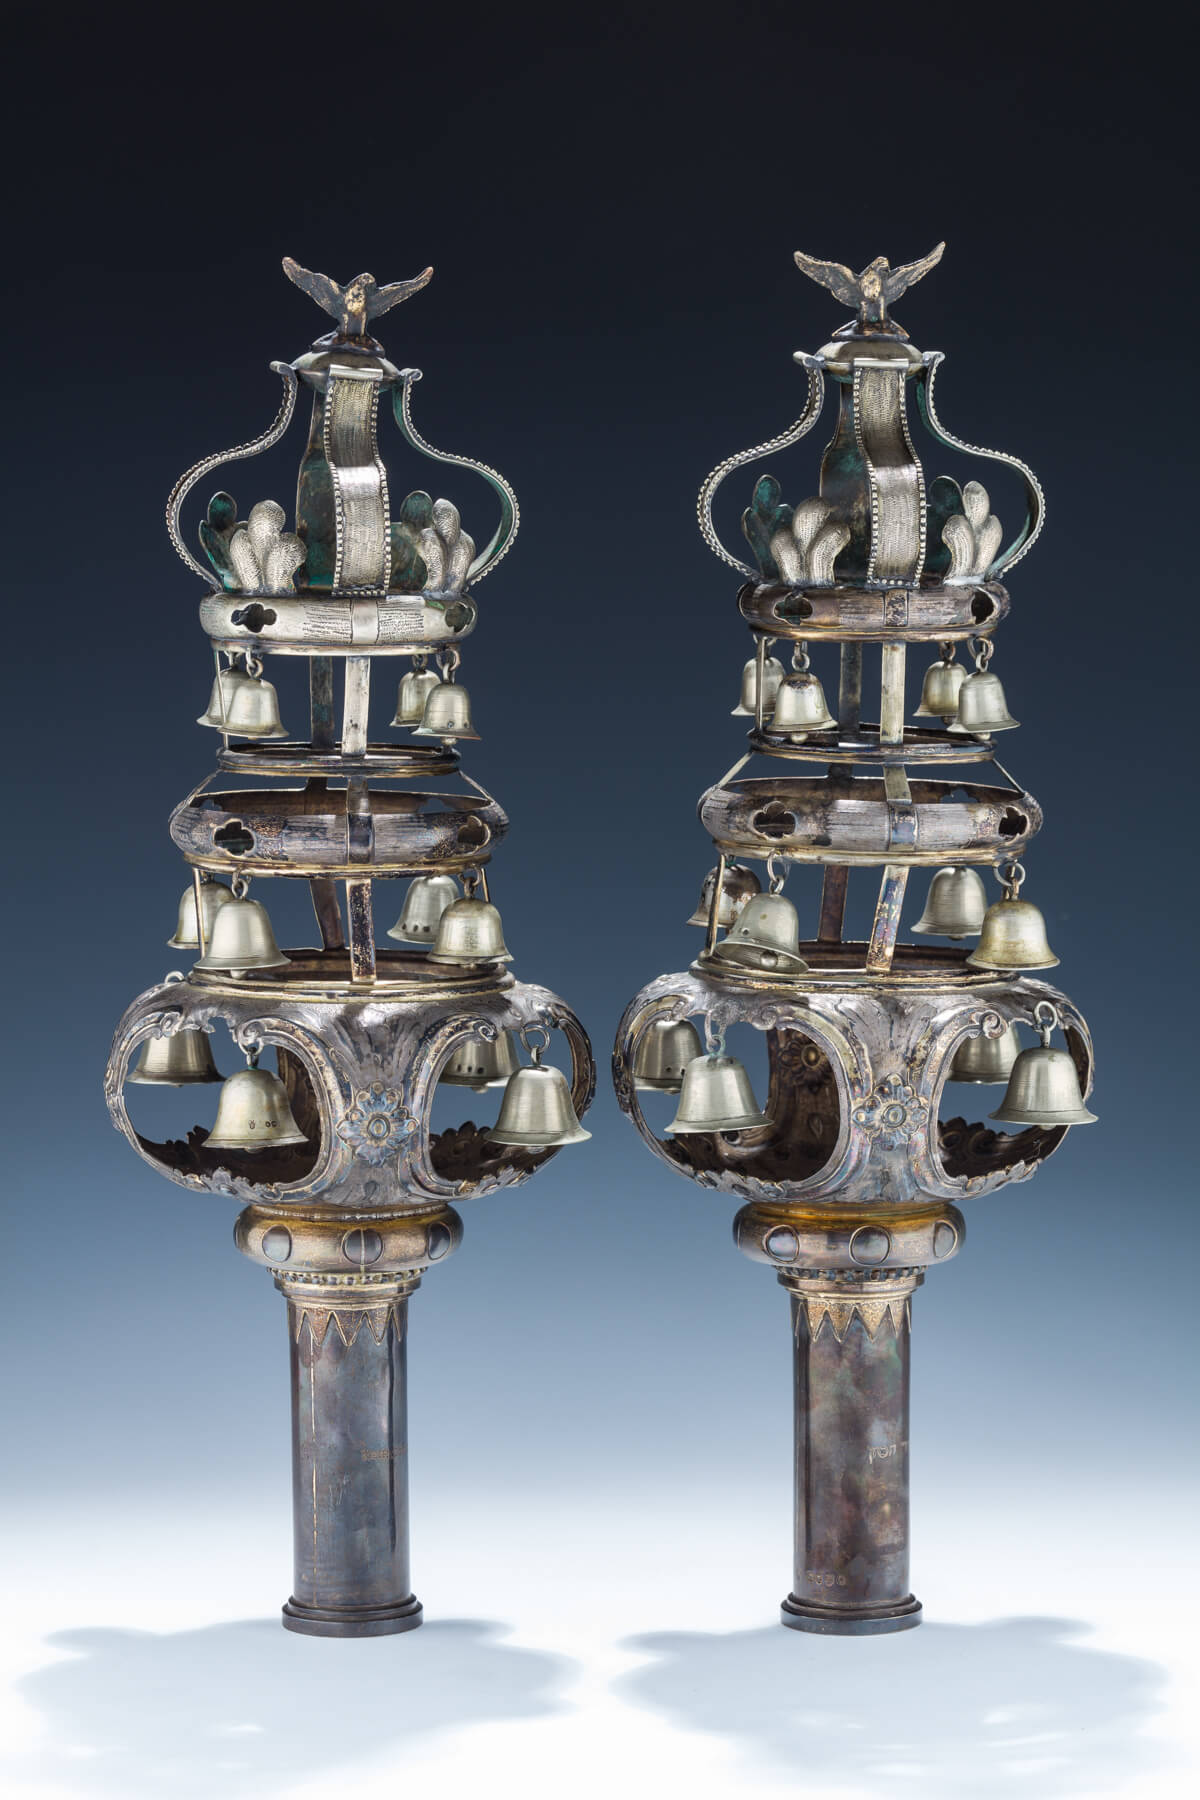 120. An Pair of Exceptional Sterling Silver Torah Finials by Edwin Charles Purdie